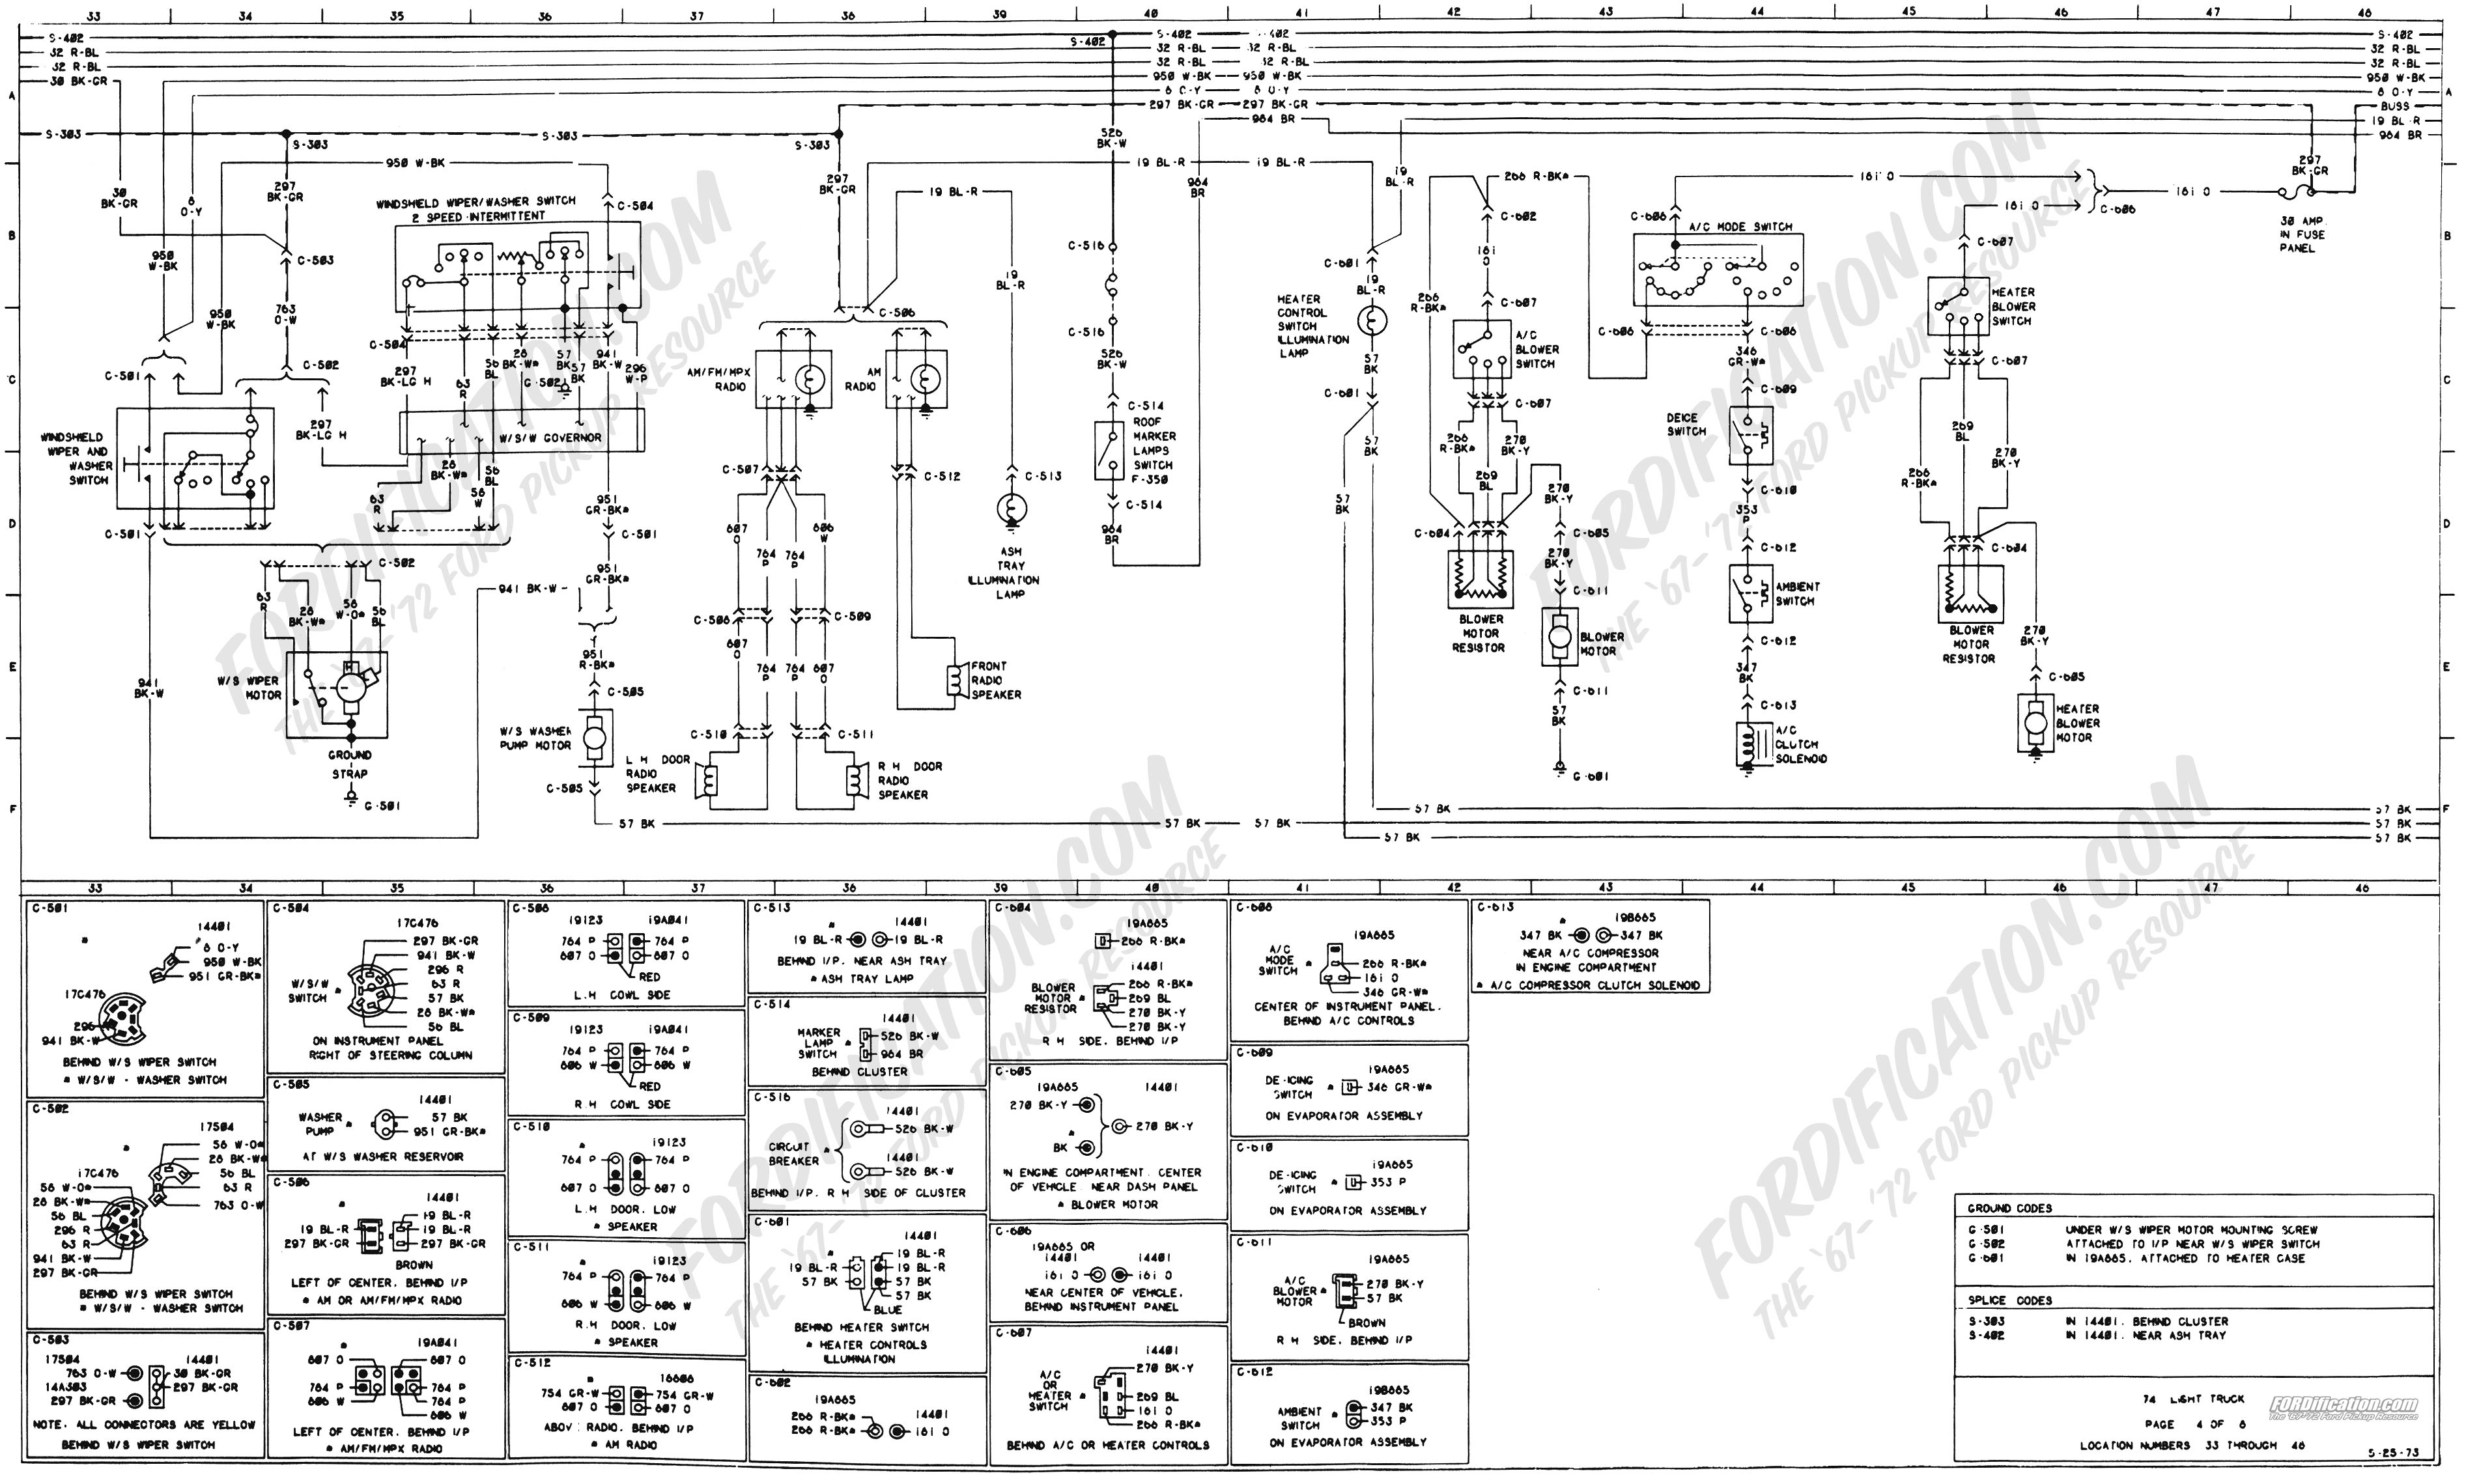 1979 Ford 460 Wiring Diagram Diagrams Engine Exploded 1973 Truck Schematics Fordification Net Rh 1984 Schematic Firing Order